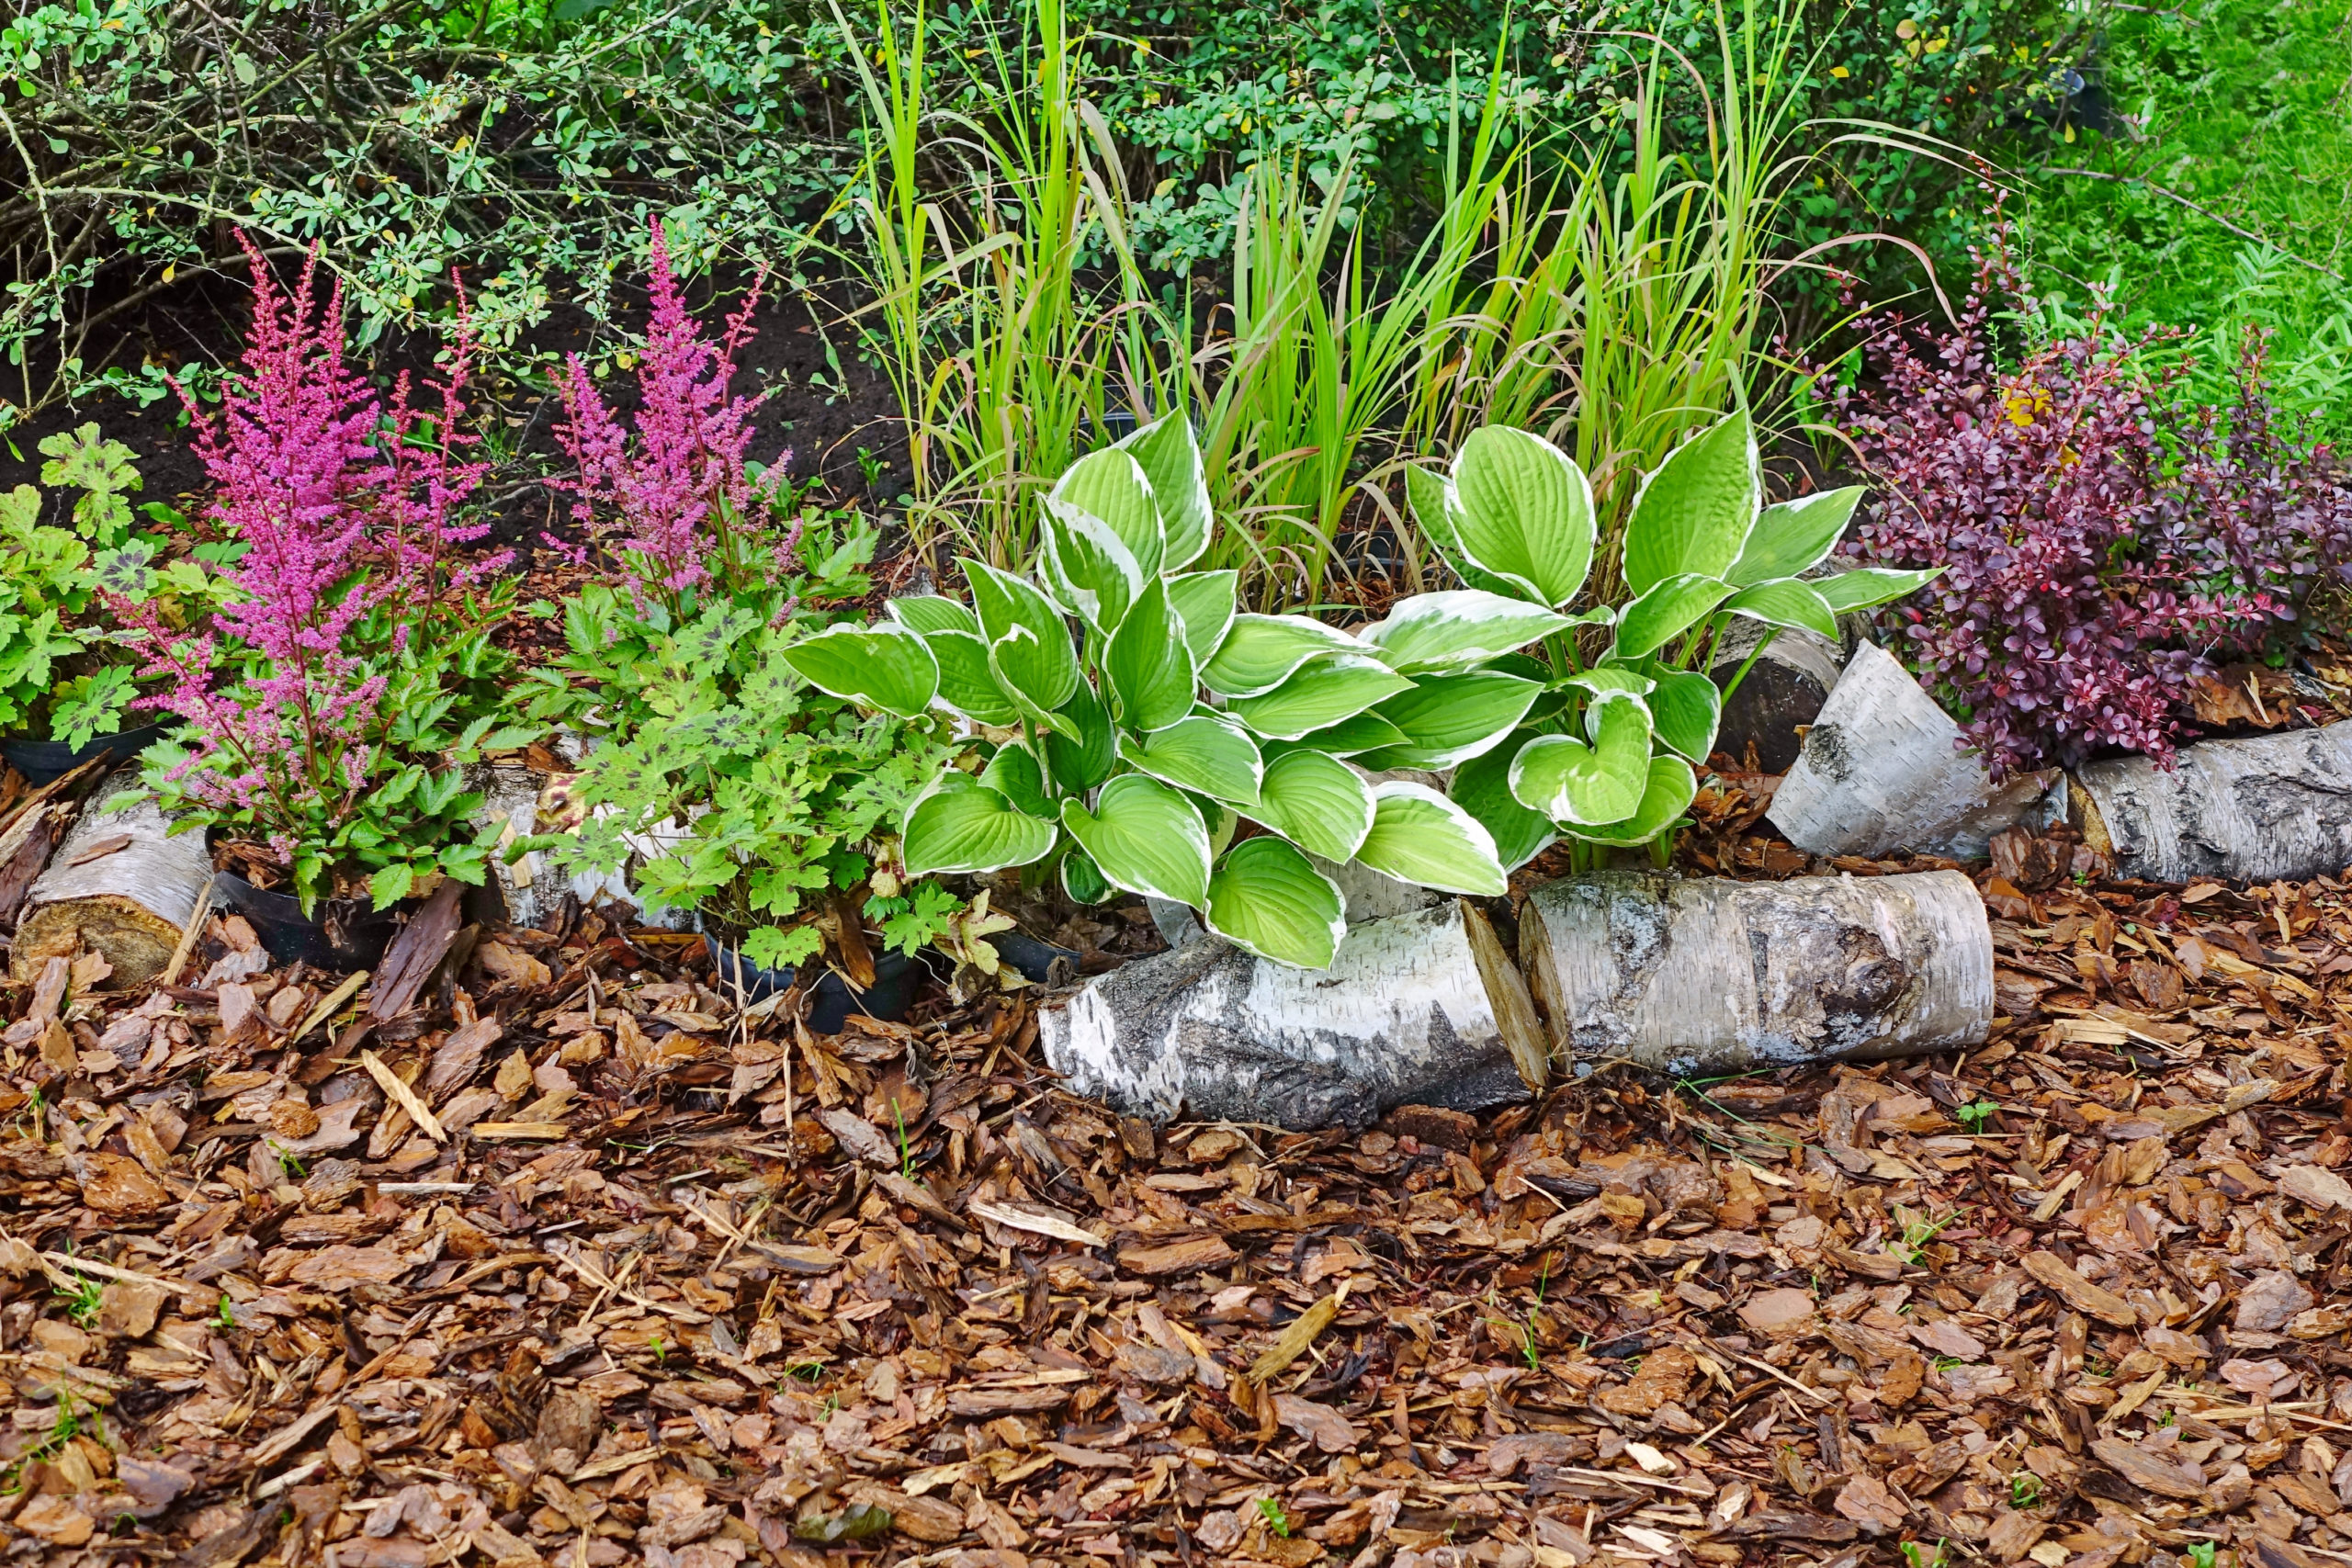 The advantages of mulching